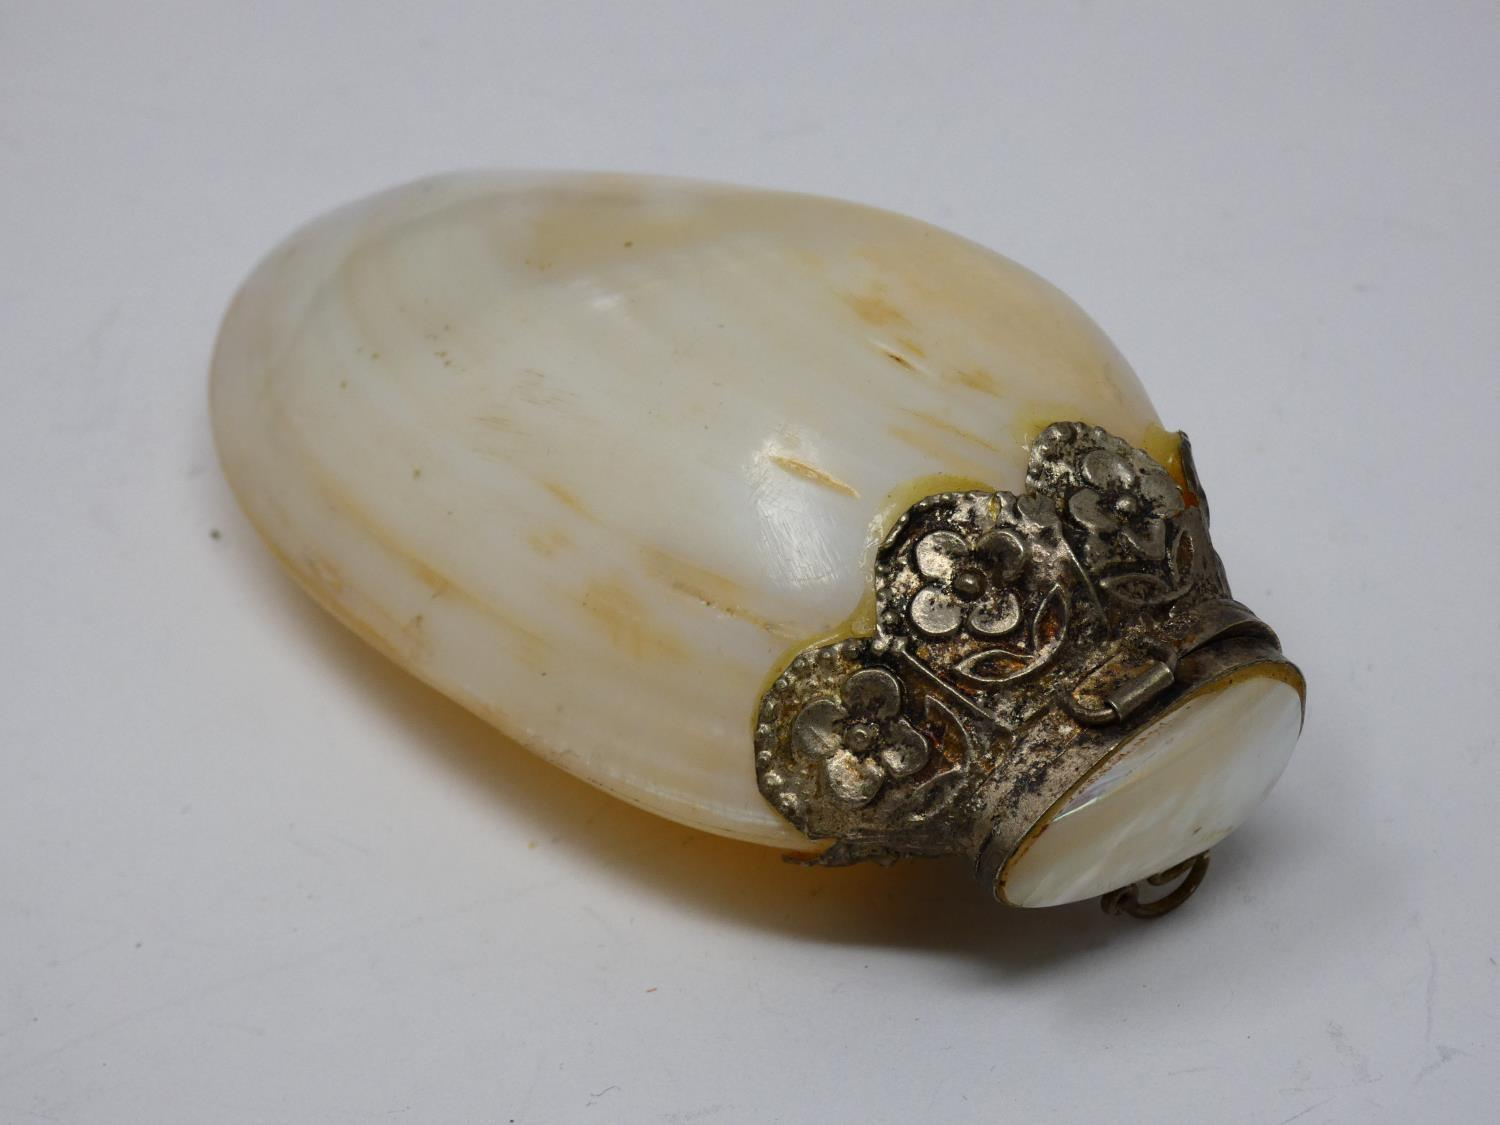 A collection of sea shell trinket boxes, three made from clam shells and three made from sections of - Image 8 of 8